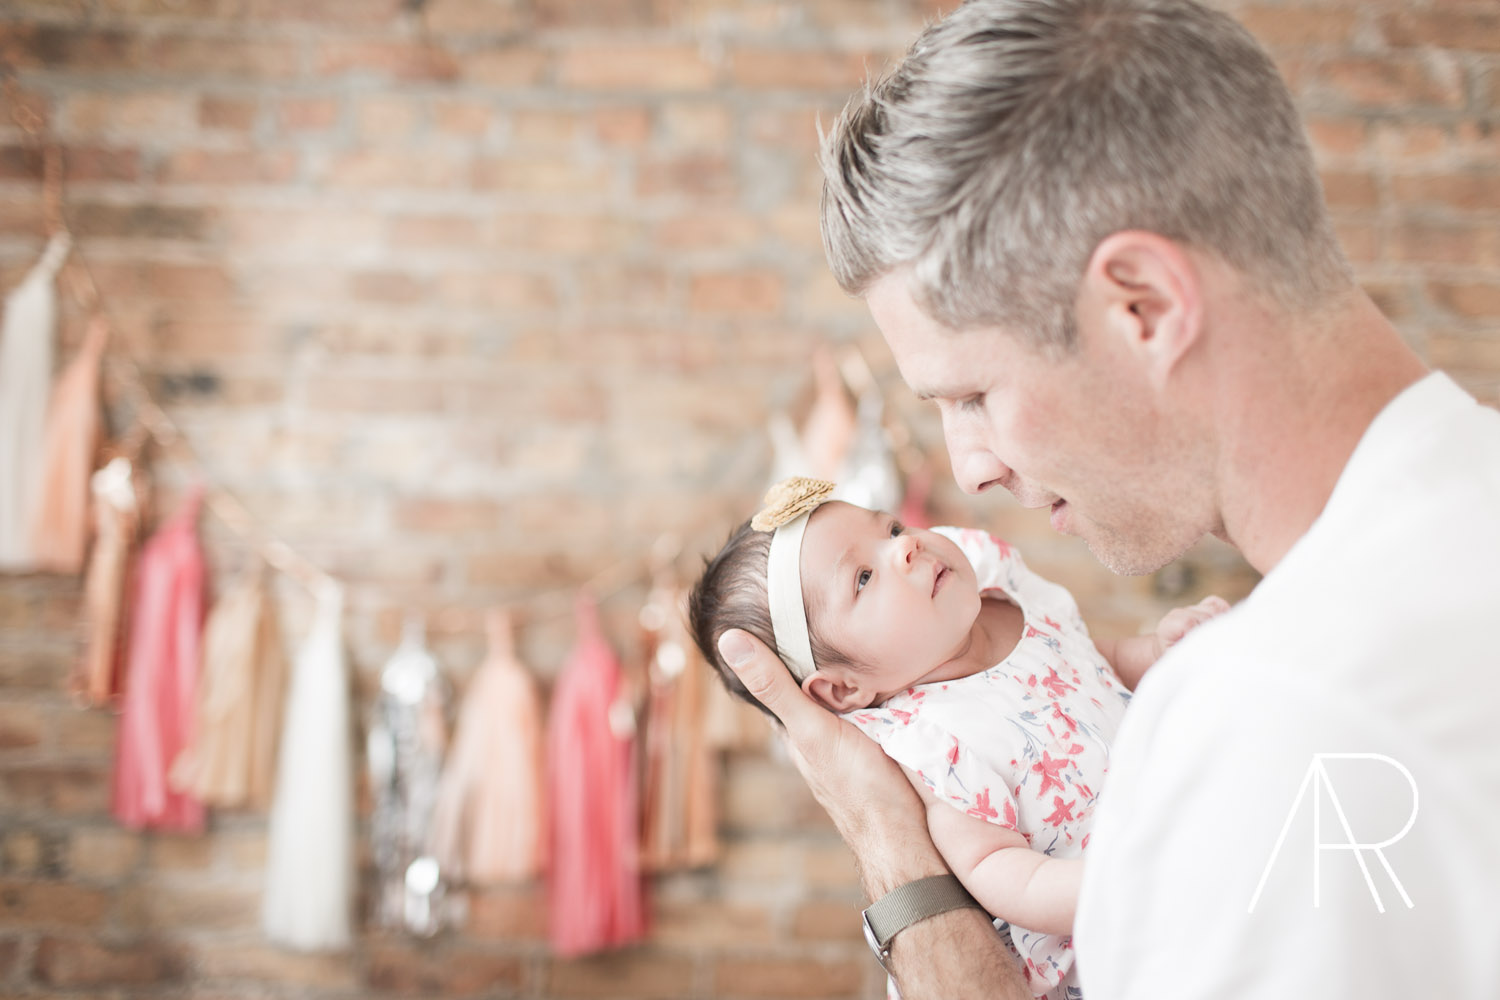 Nashville Wedding and Family Photographer Alyssa Rosenheck Photography